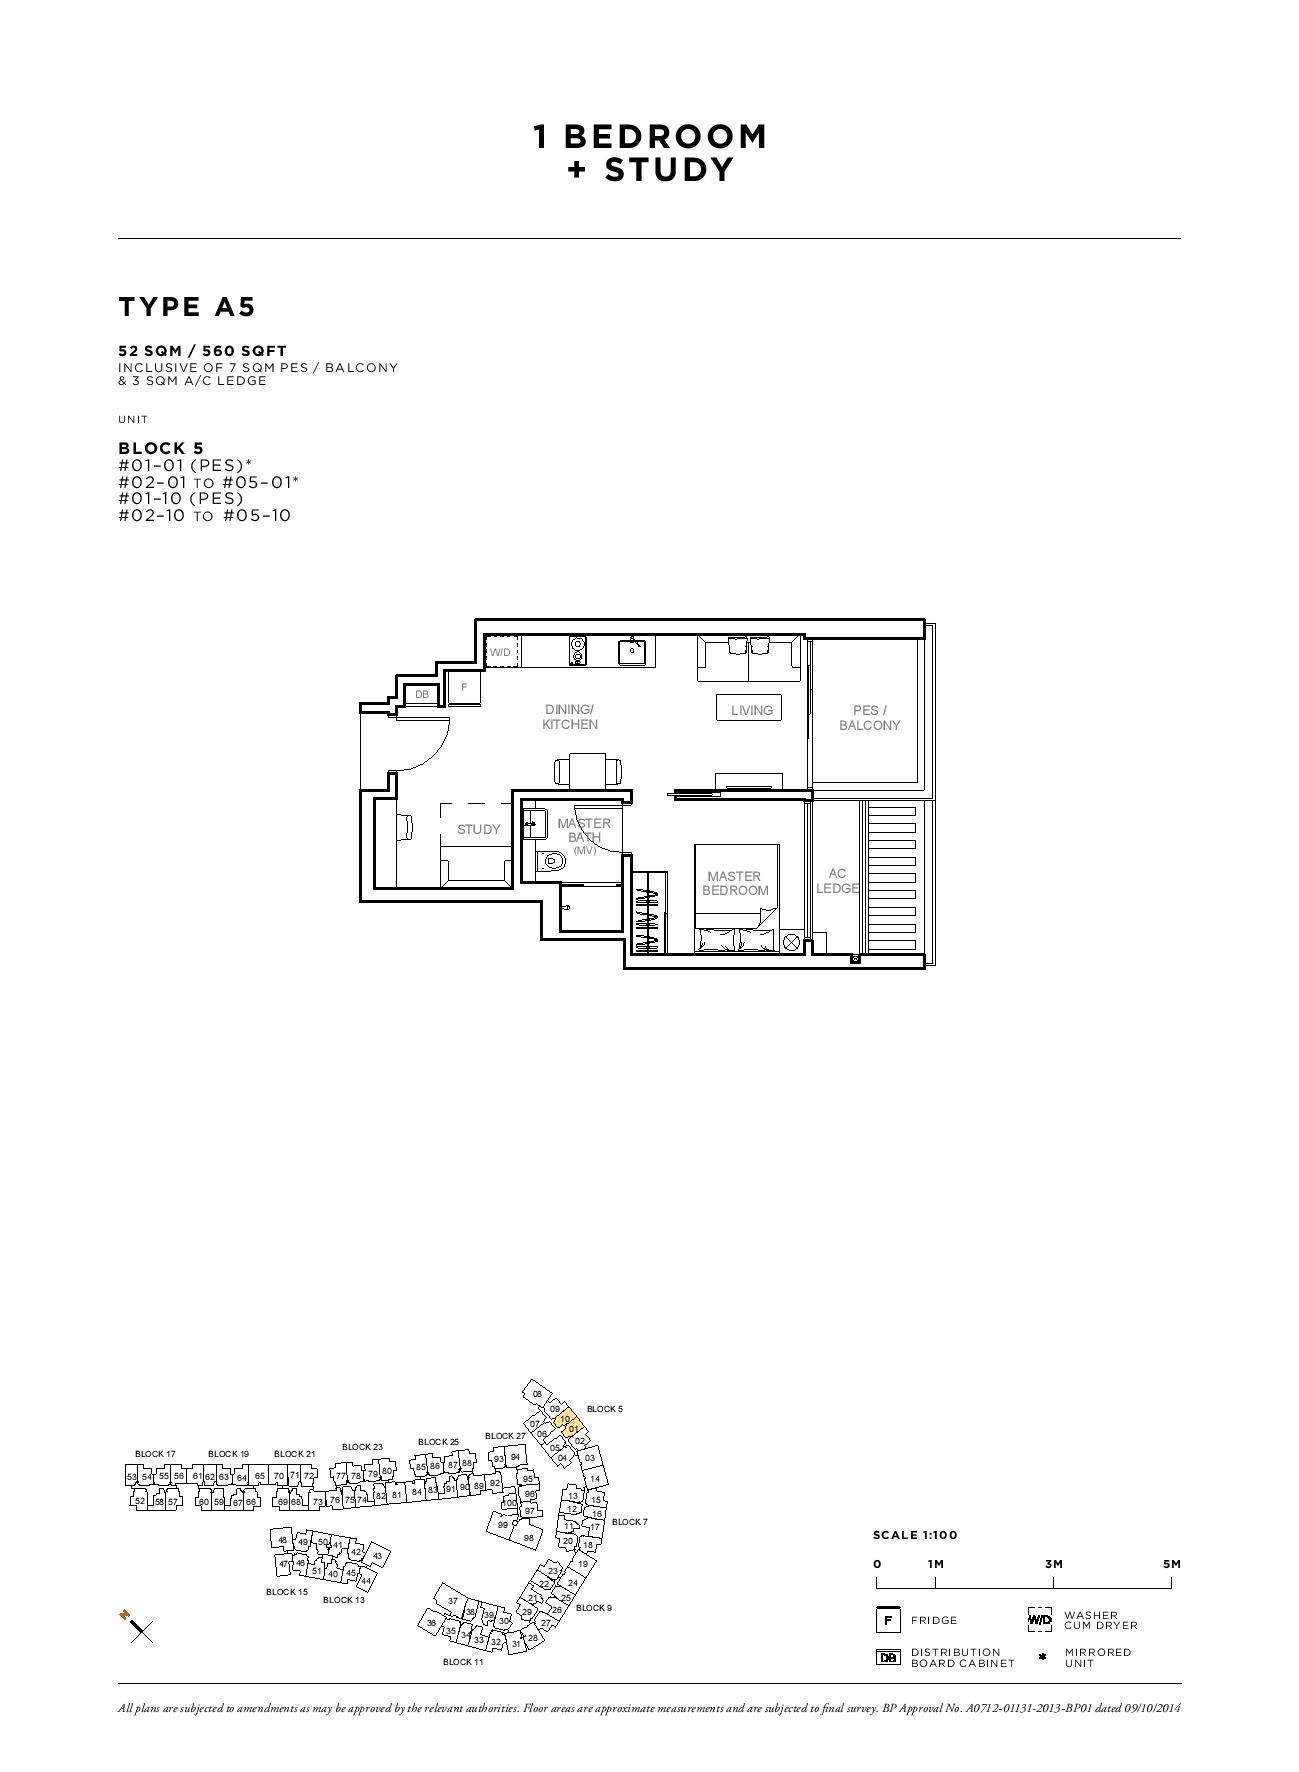 Sophia Hills 1 Bedroom + Study Type A5 Floor Plans